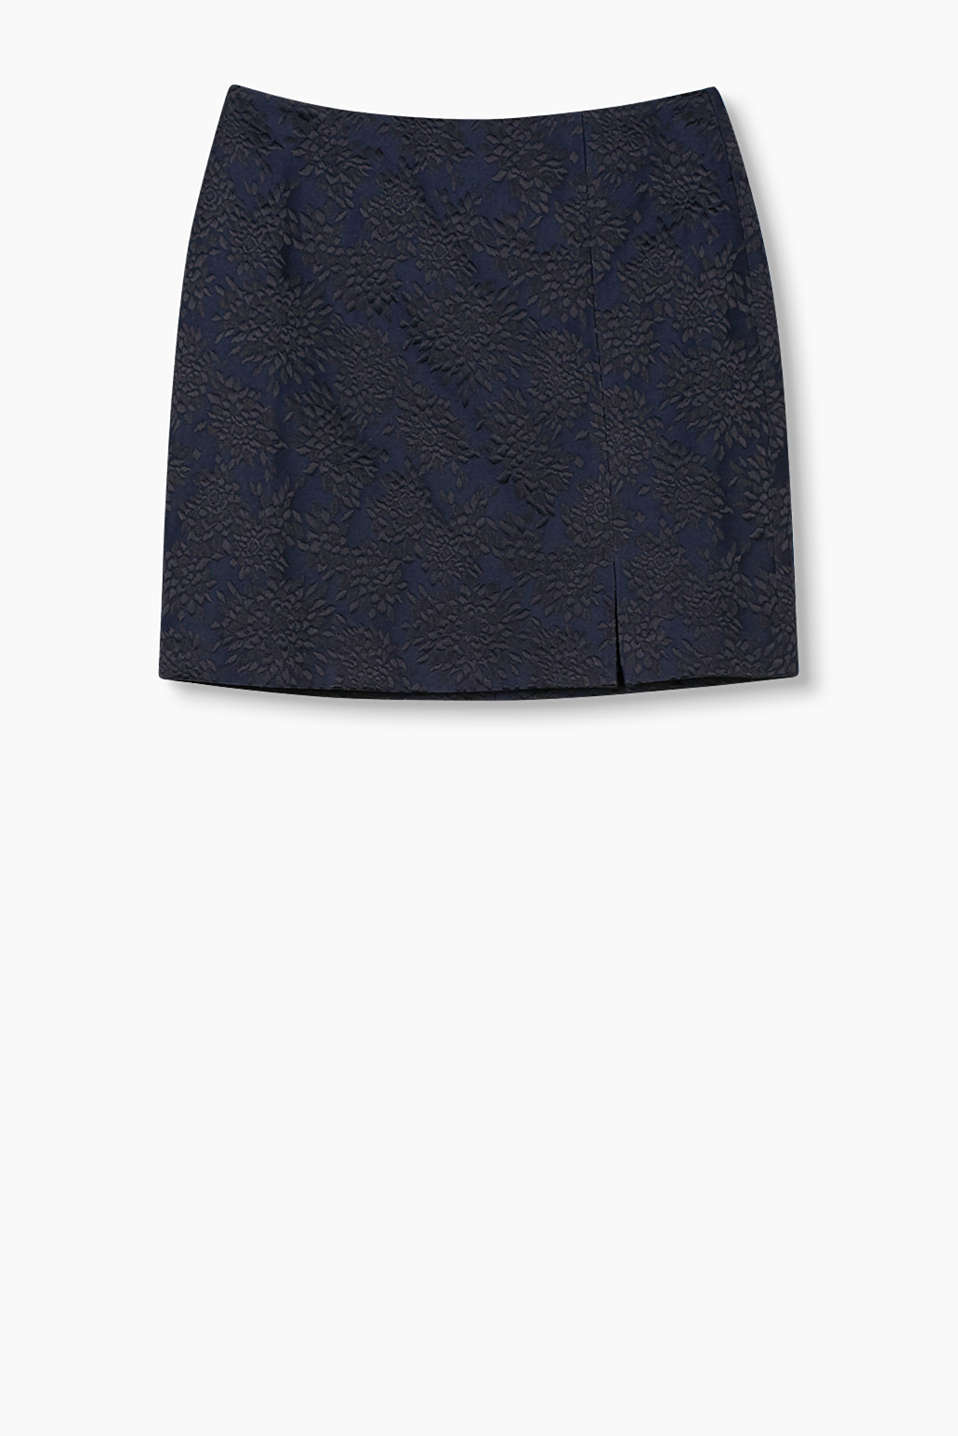 Elegant mini skirt in non-stretch jacquard (polyester/cotton) with a shimmering floral pattern